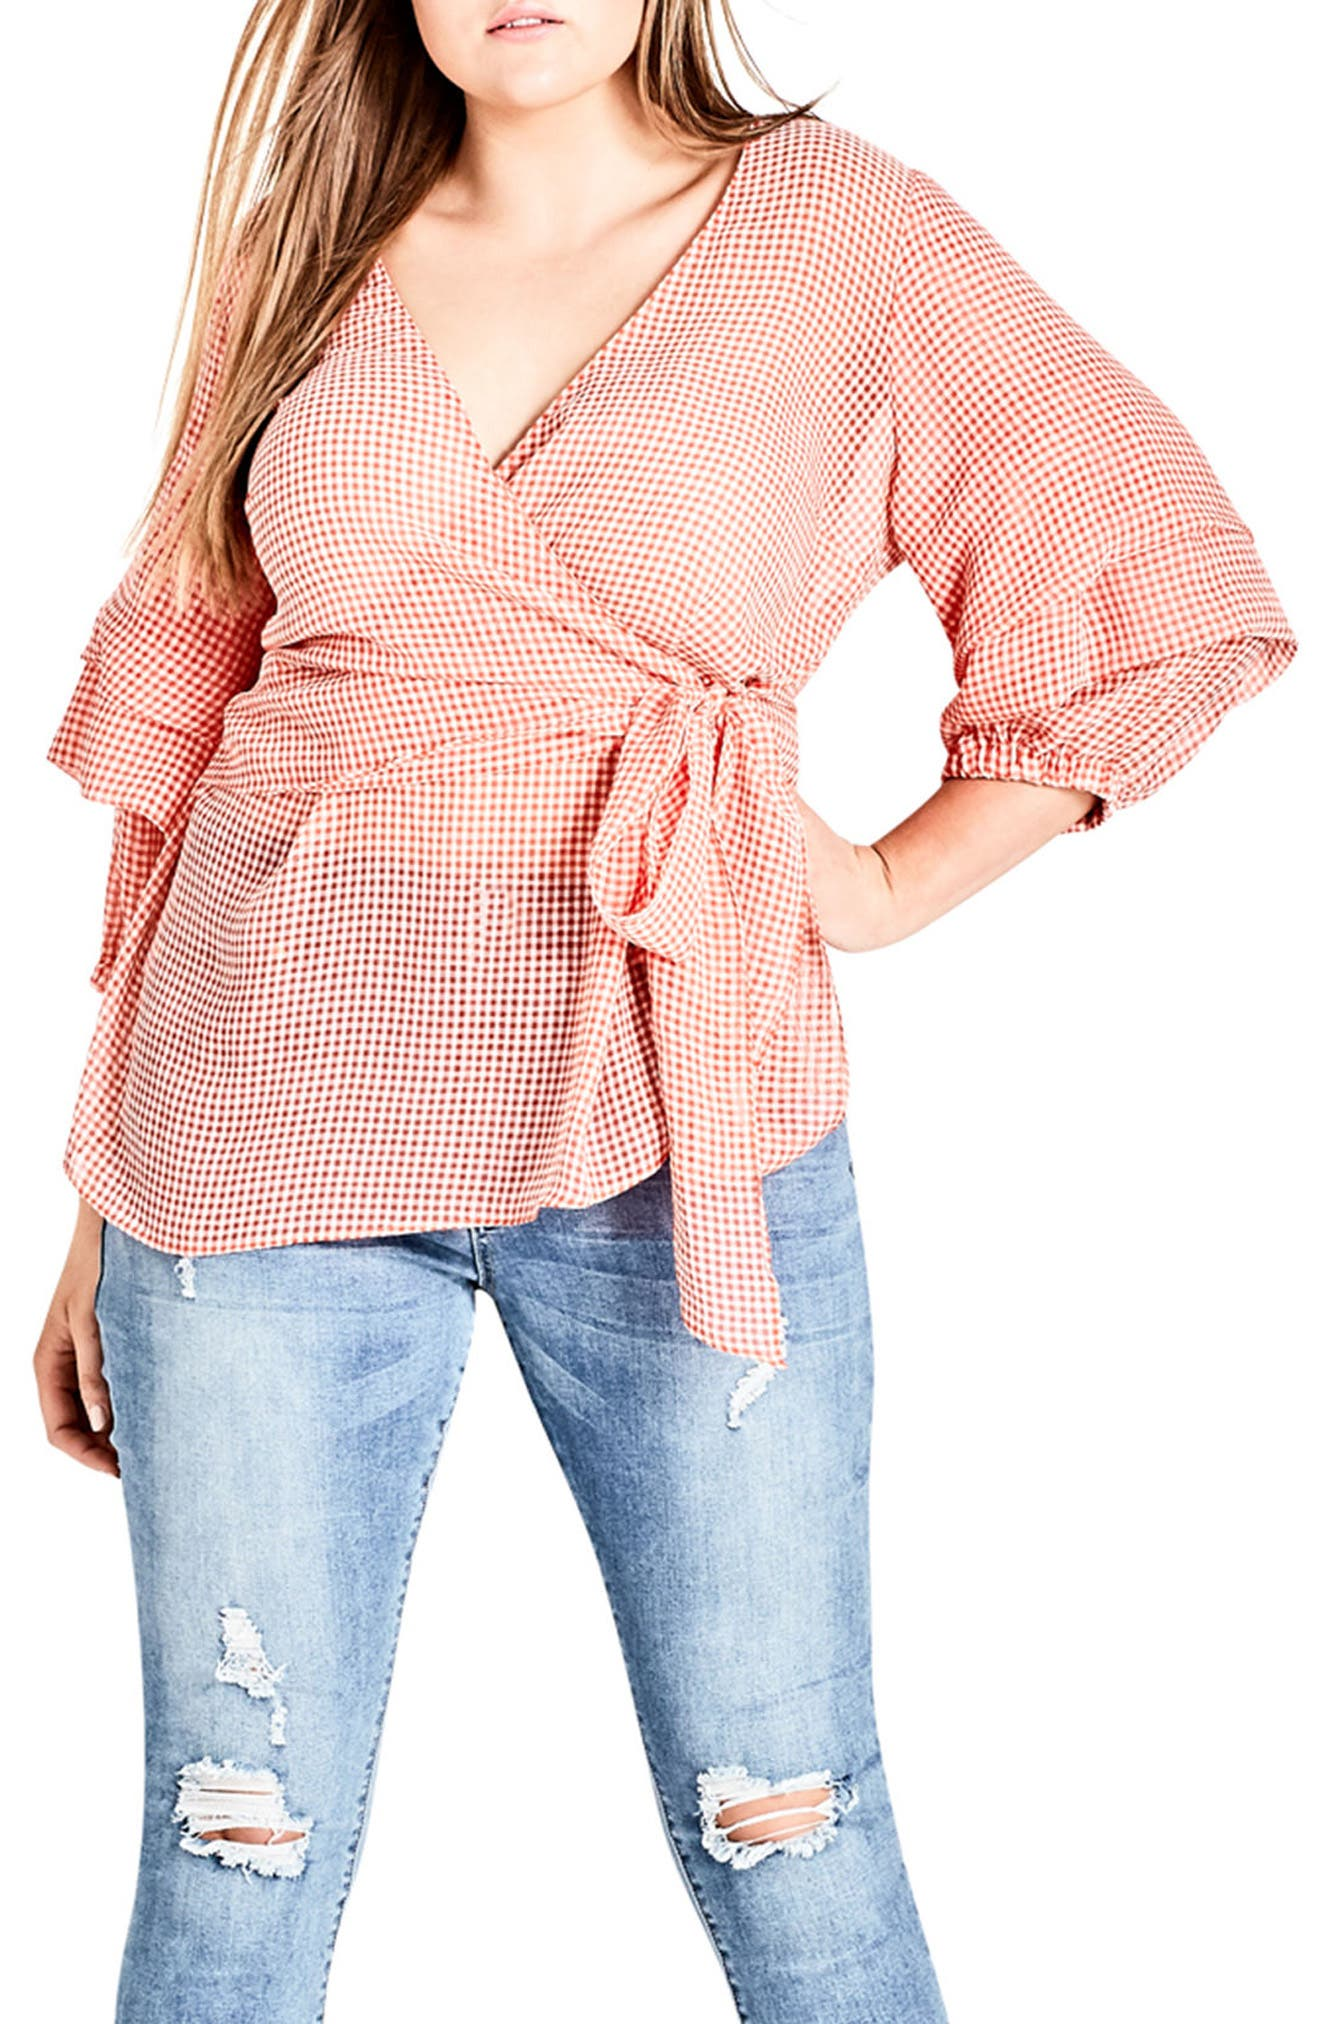 Alternate Image 1 Selected - City Chic My Desire Check Print Wrap Top (Plus Size)